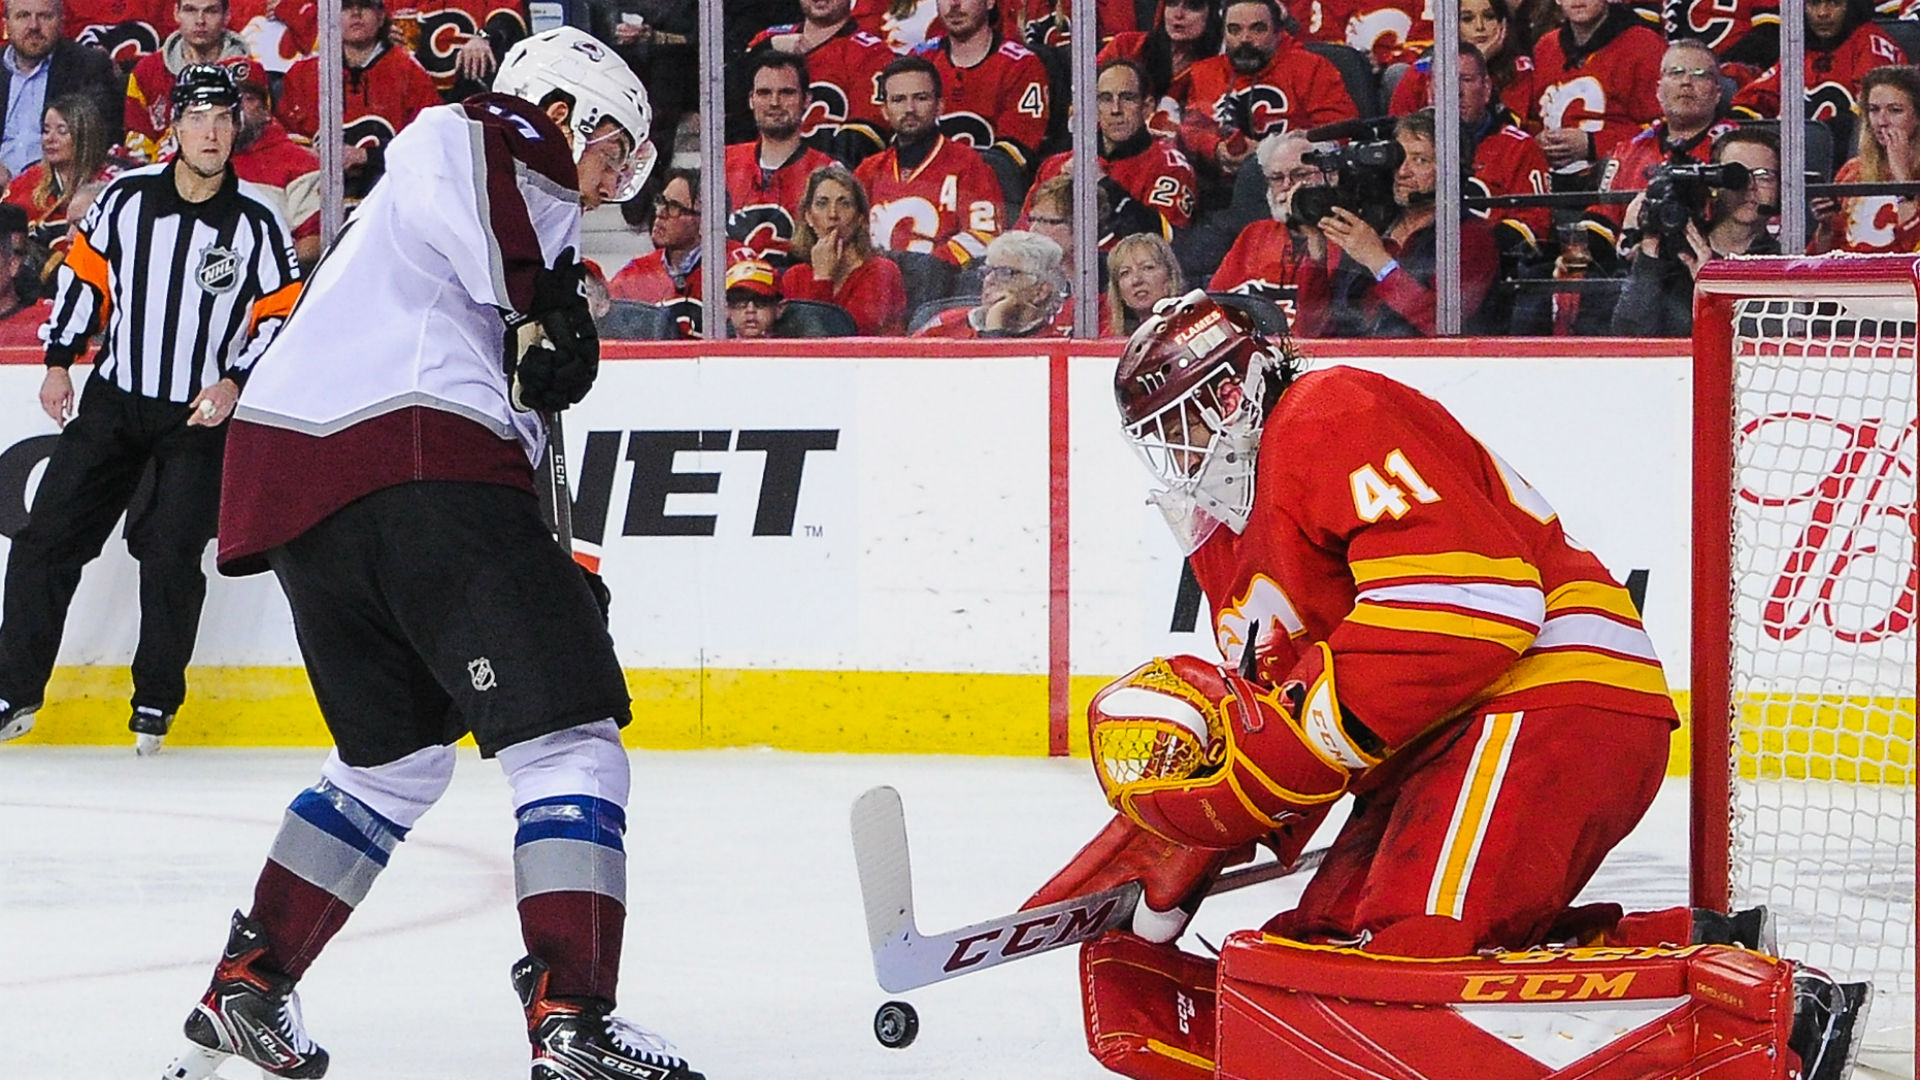 NHL playoffs 2019: Flames' Mike Smith records shutout, assist in Game 1 win over Avalanche